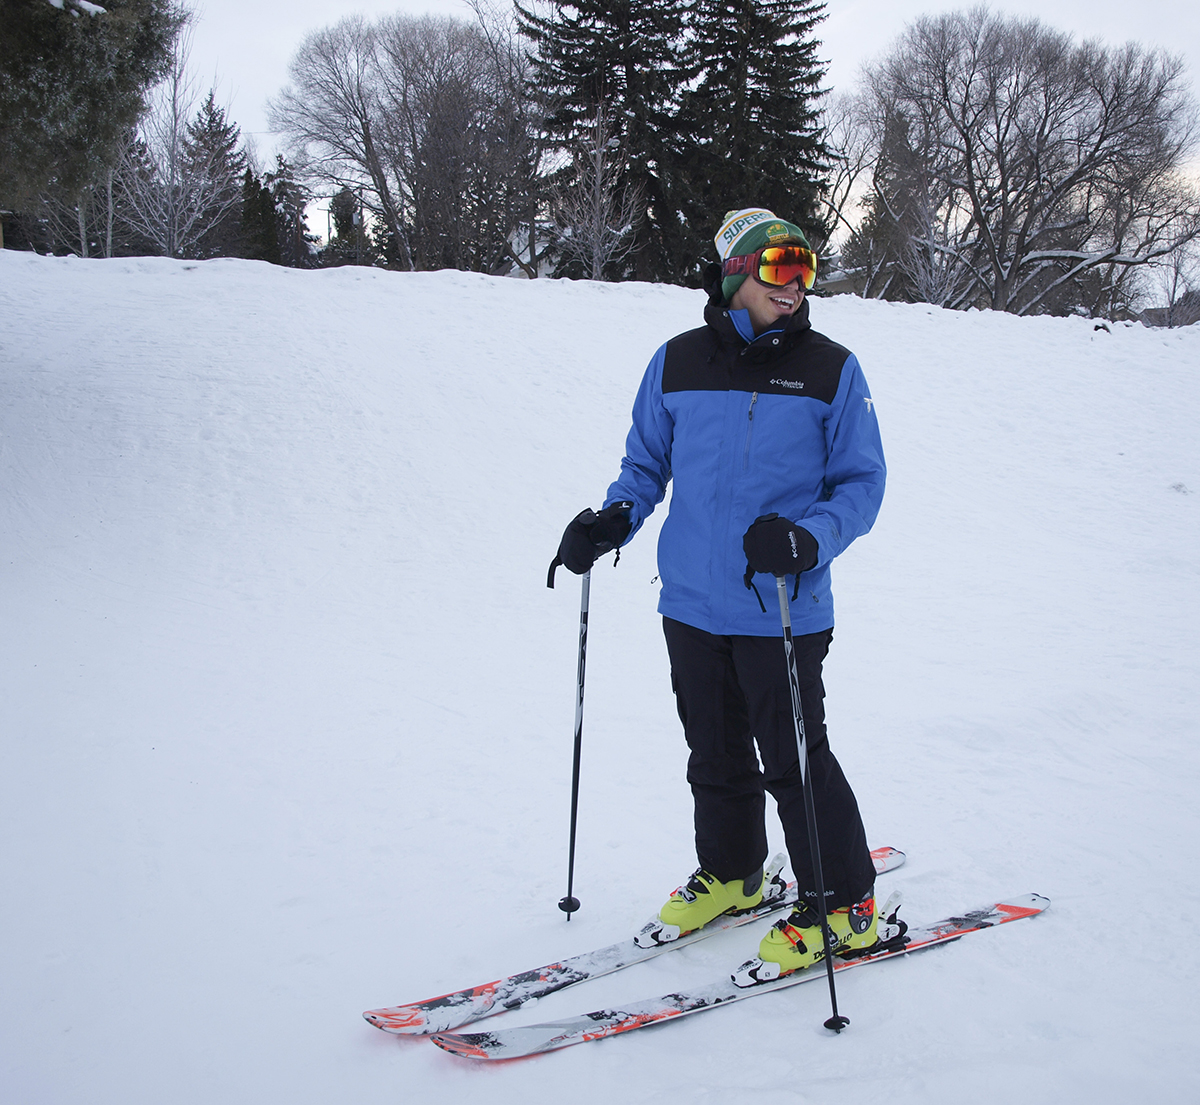 Students find exhilaration in winter sports